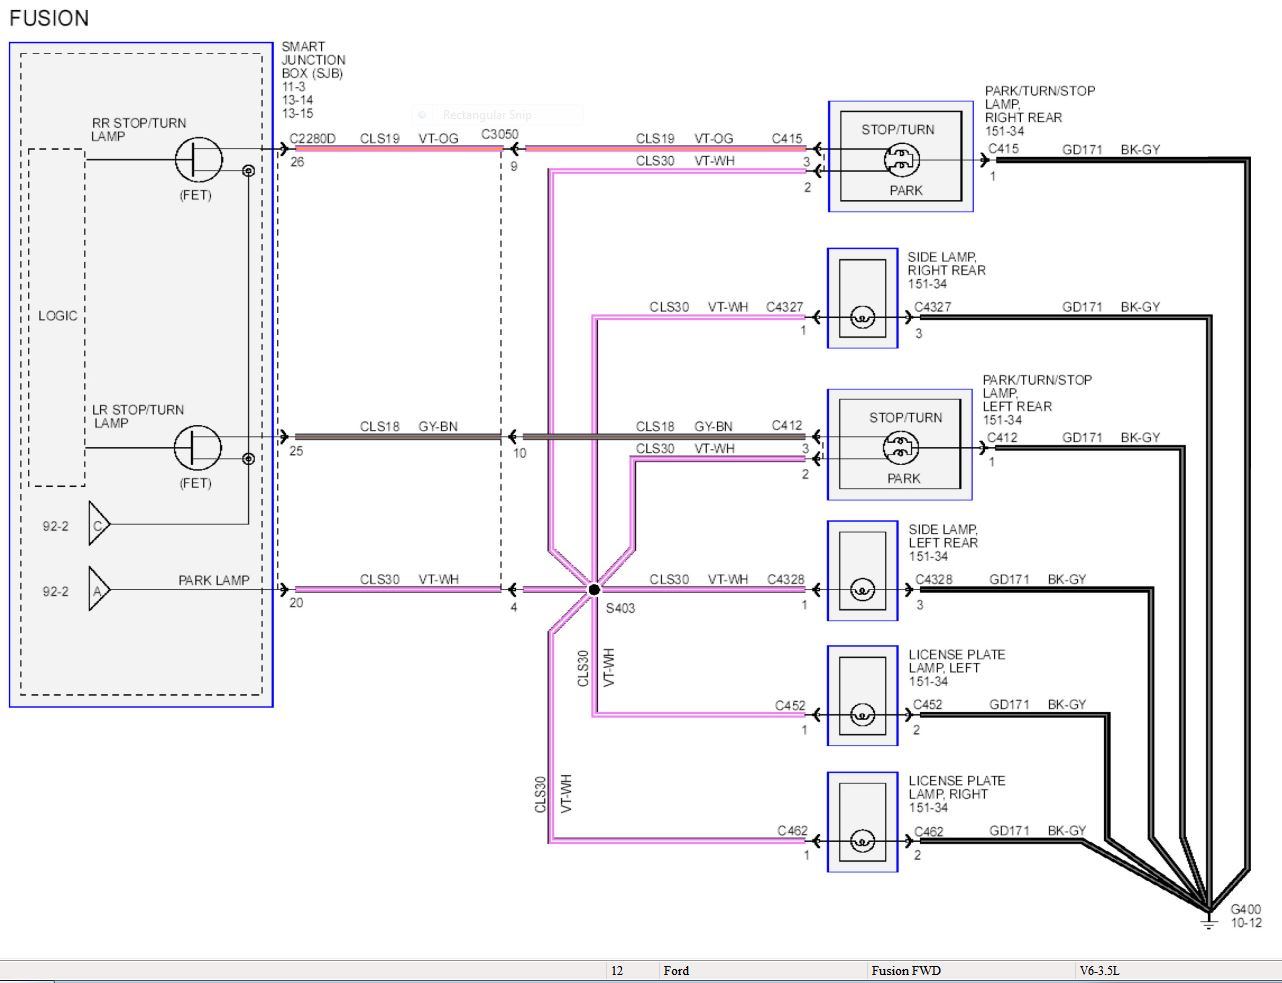 2014 ford fusion wiring diagram fisch